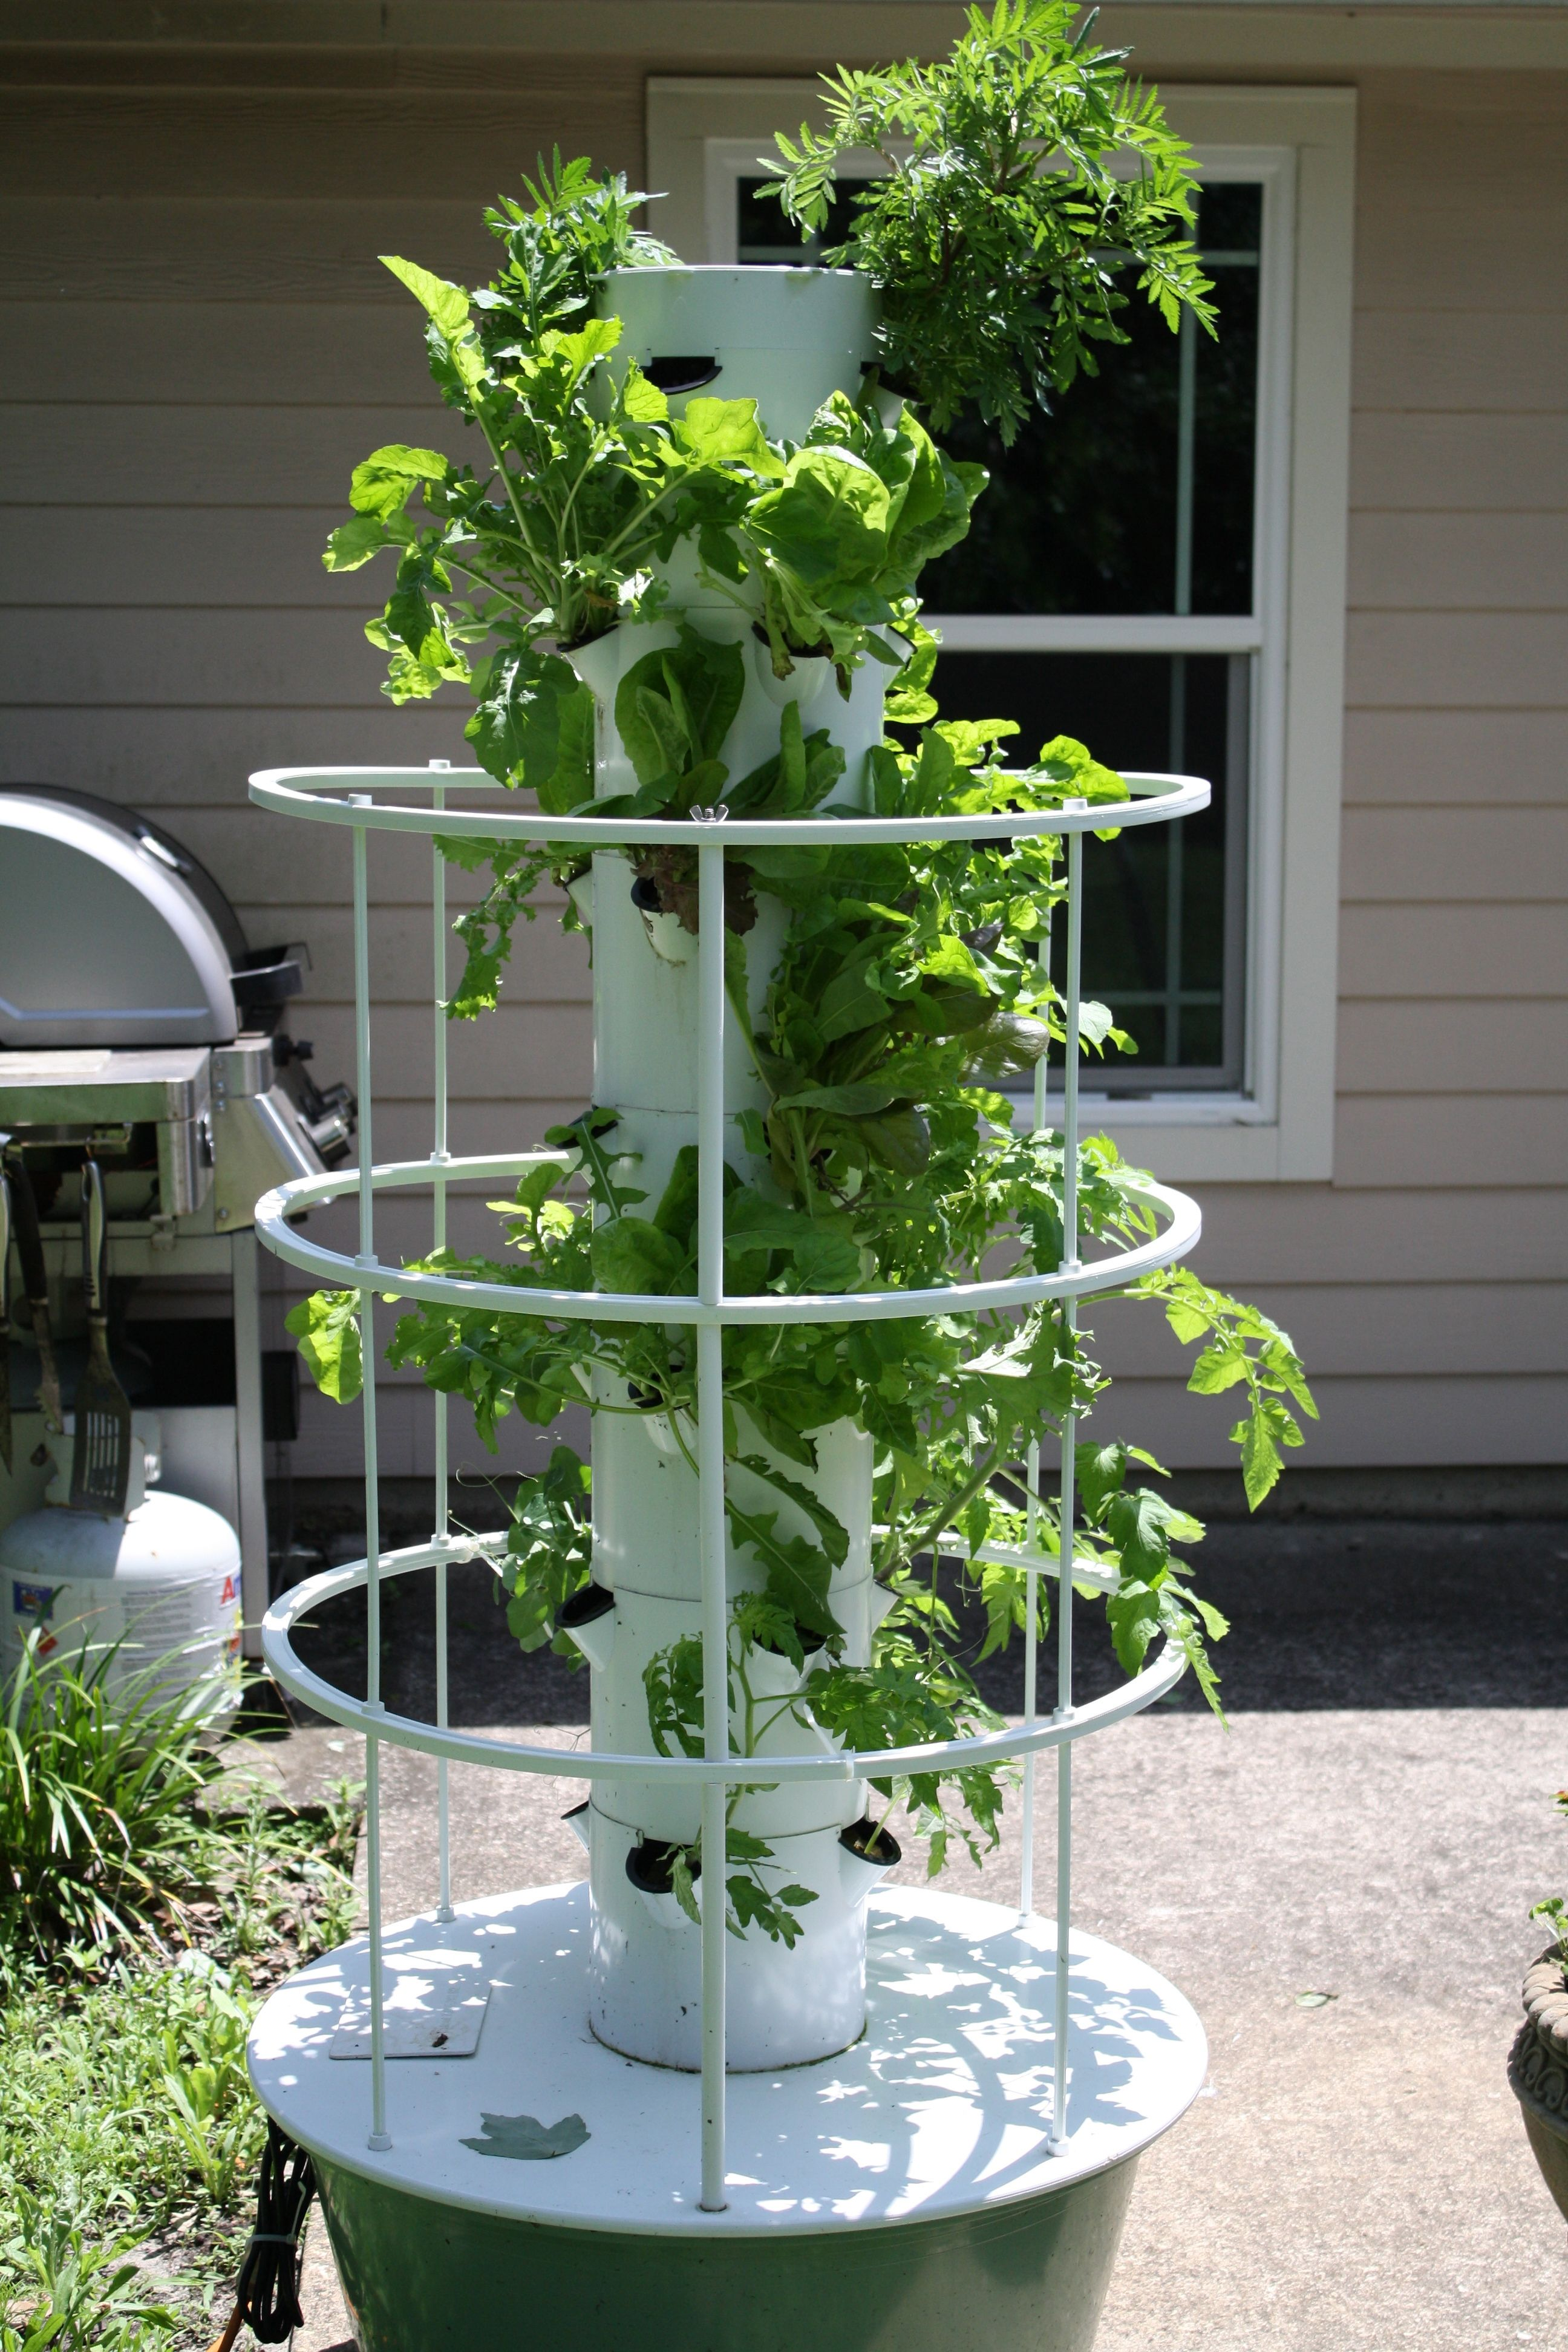 North side of the Tower Garden (Away from the sun) Tower